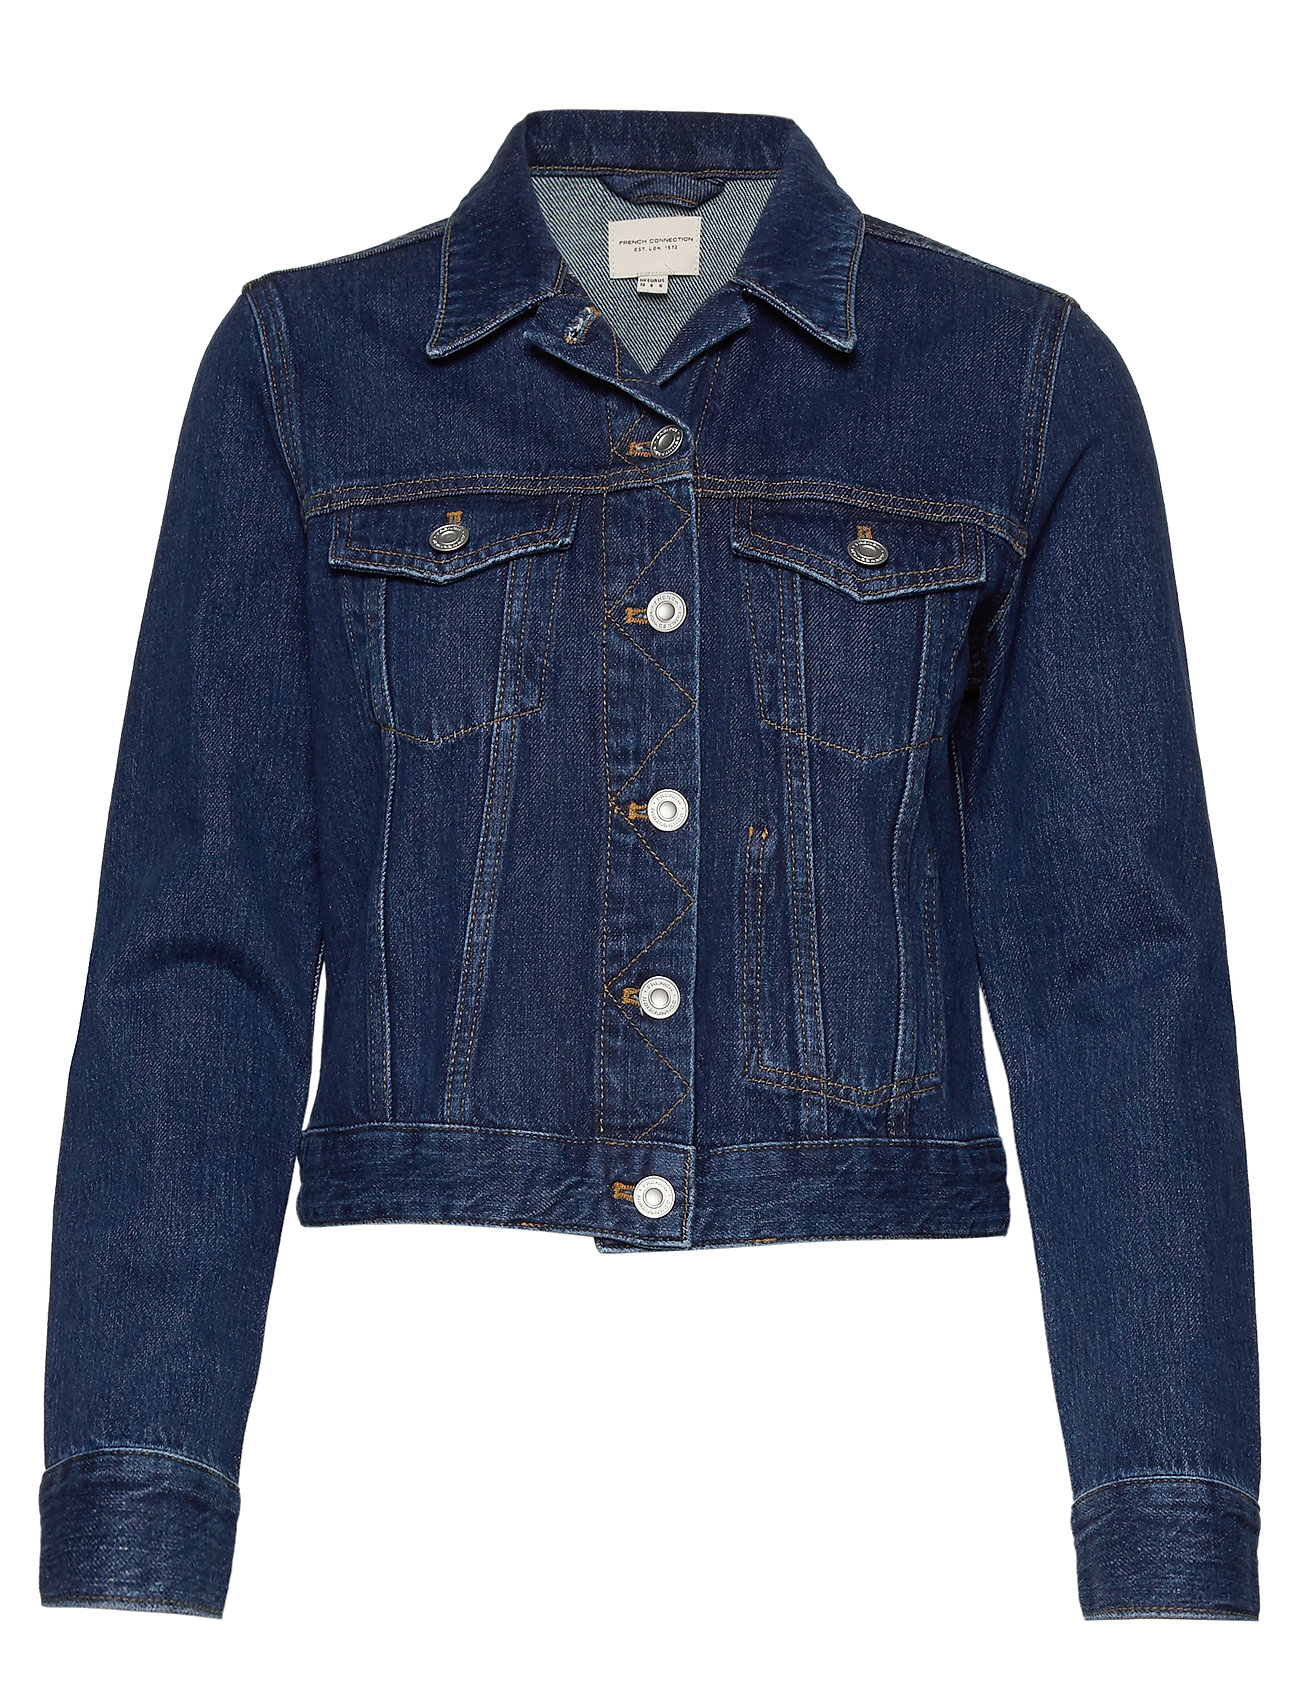 French Connection MACEE MICRO WSTRN DENIM LS JKT - MID BLUE